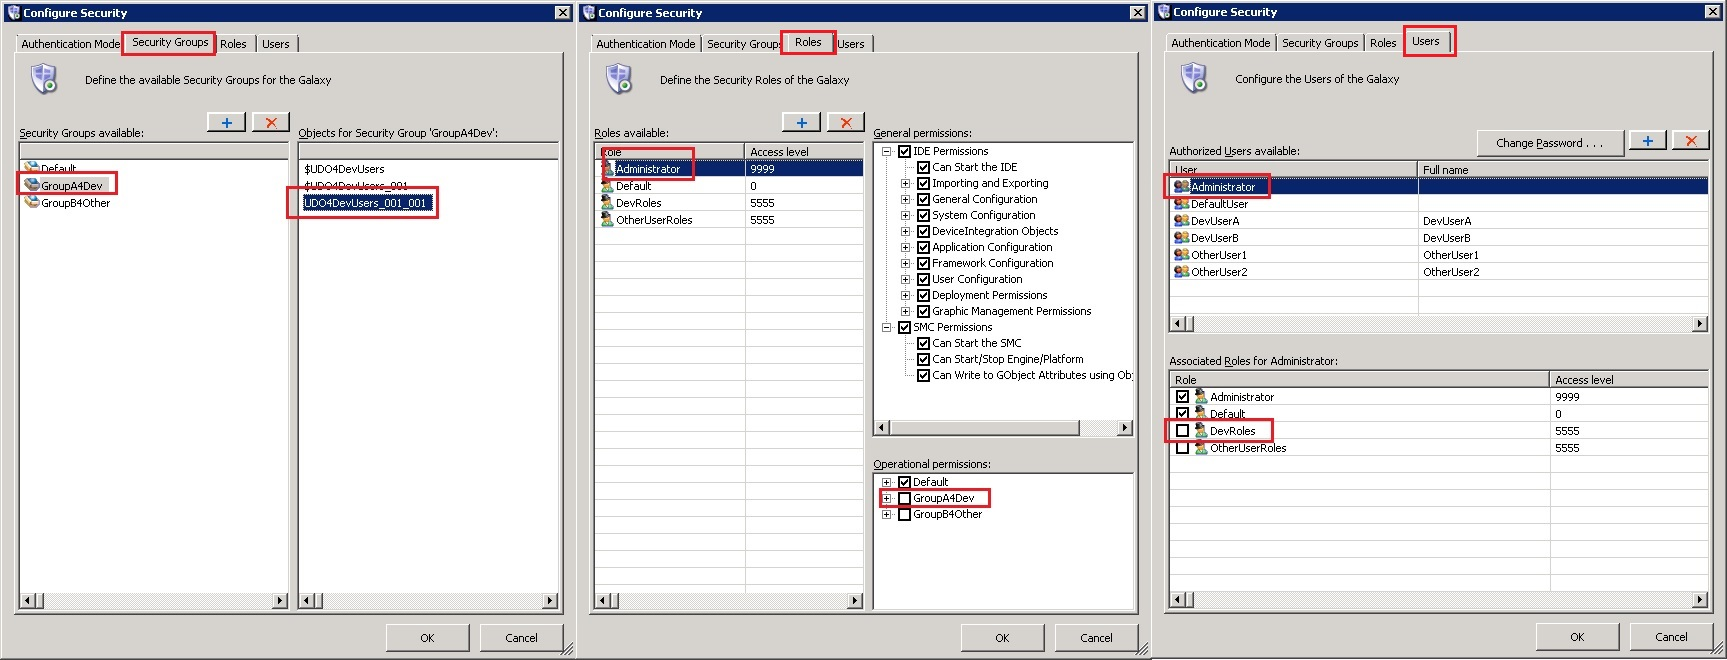 Check which Security Group UDO4DevUsers_001_001 belongs to. Figure 5 (below) shows the Configure Security window with the respective tabs' checkpoints.